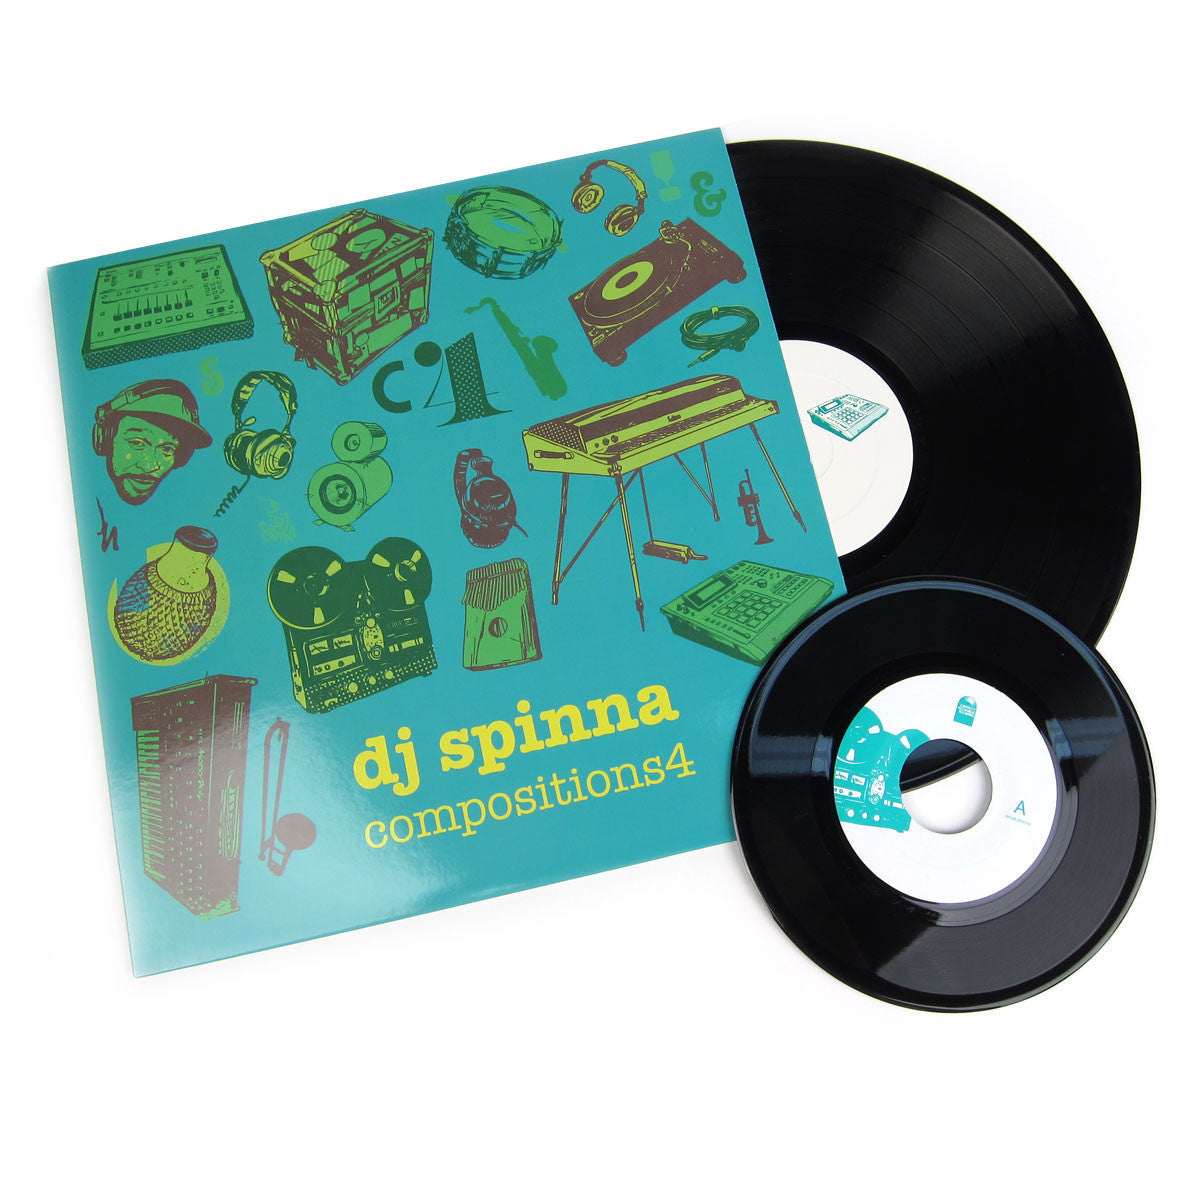 DJ Spinna: Compositions 4 Vinyl LP+7""